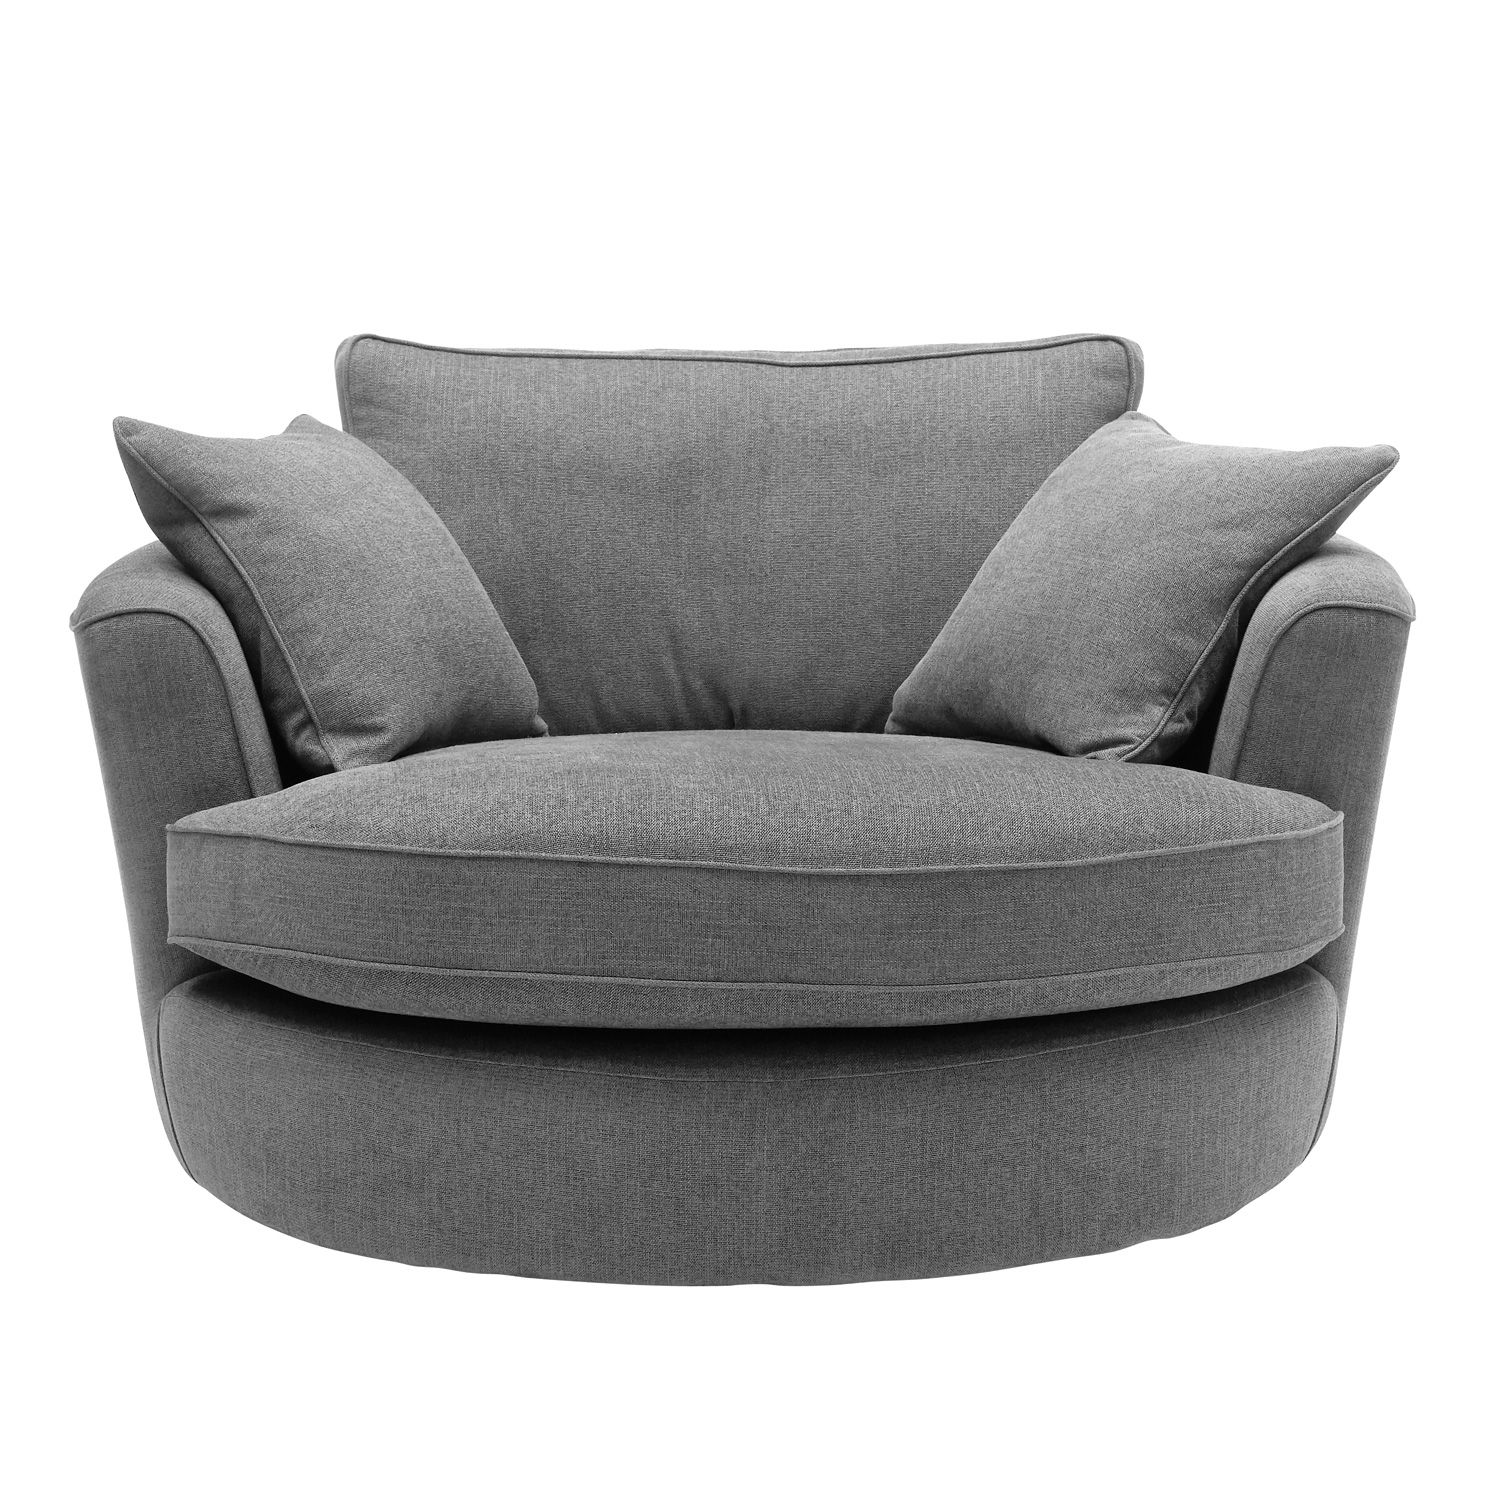 Heal 39 S Waltzer Swivel Loveseat Bocaccio Fabric Loveseats Sofas Furniture For The Home